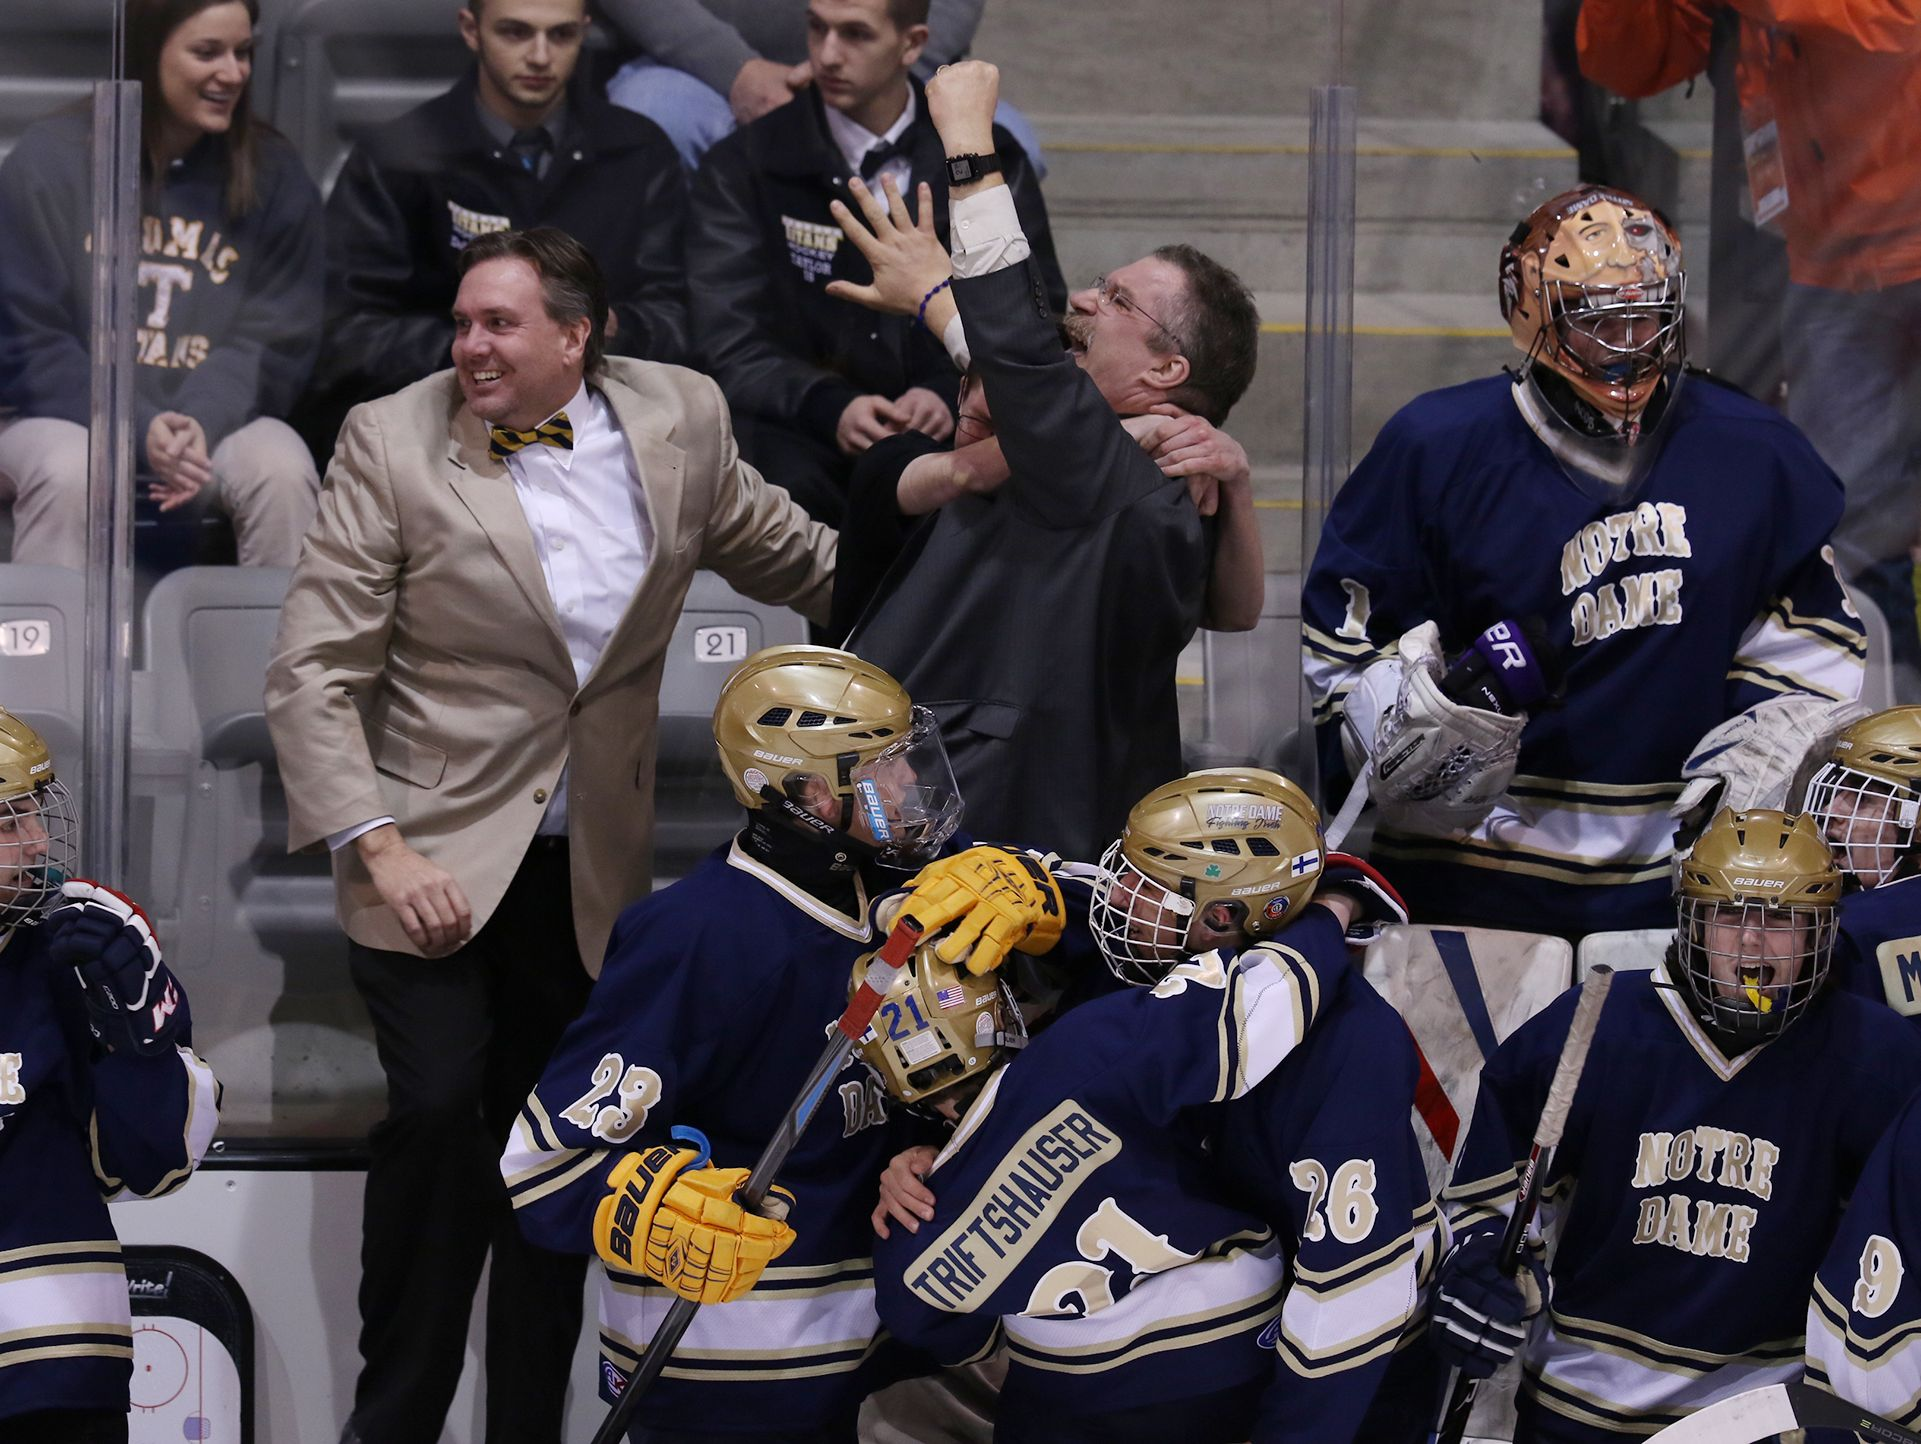 The coaches , including head coach Marc Staley, and the bench of Batavia Notre Dame react as they pull ahead in the final seconds 2-0 against Geneseo/Livonia/Avon.